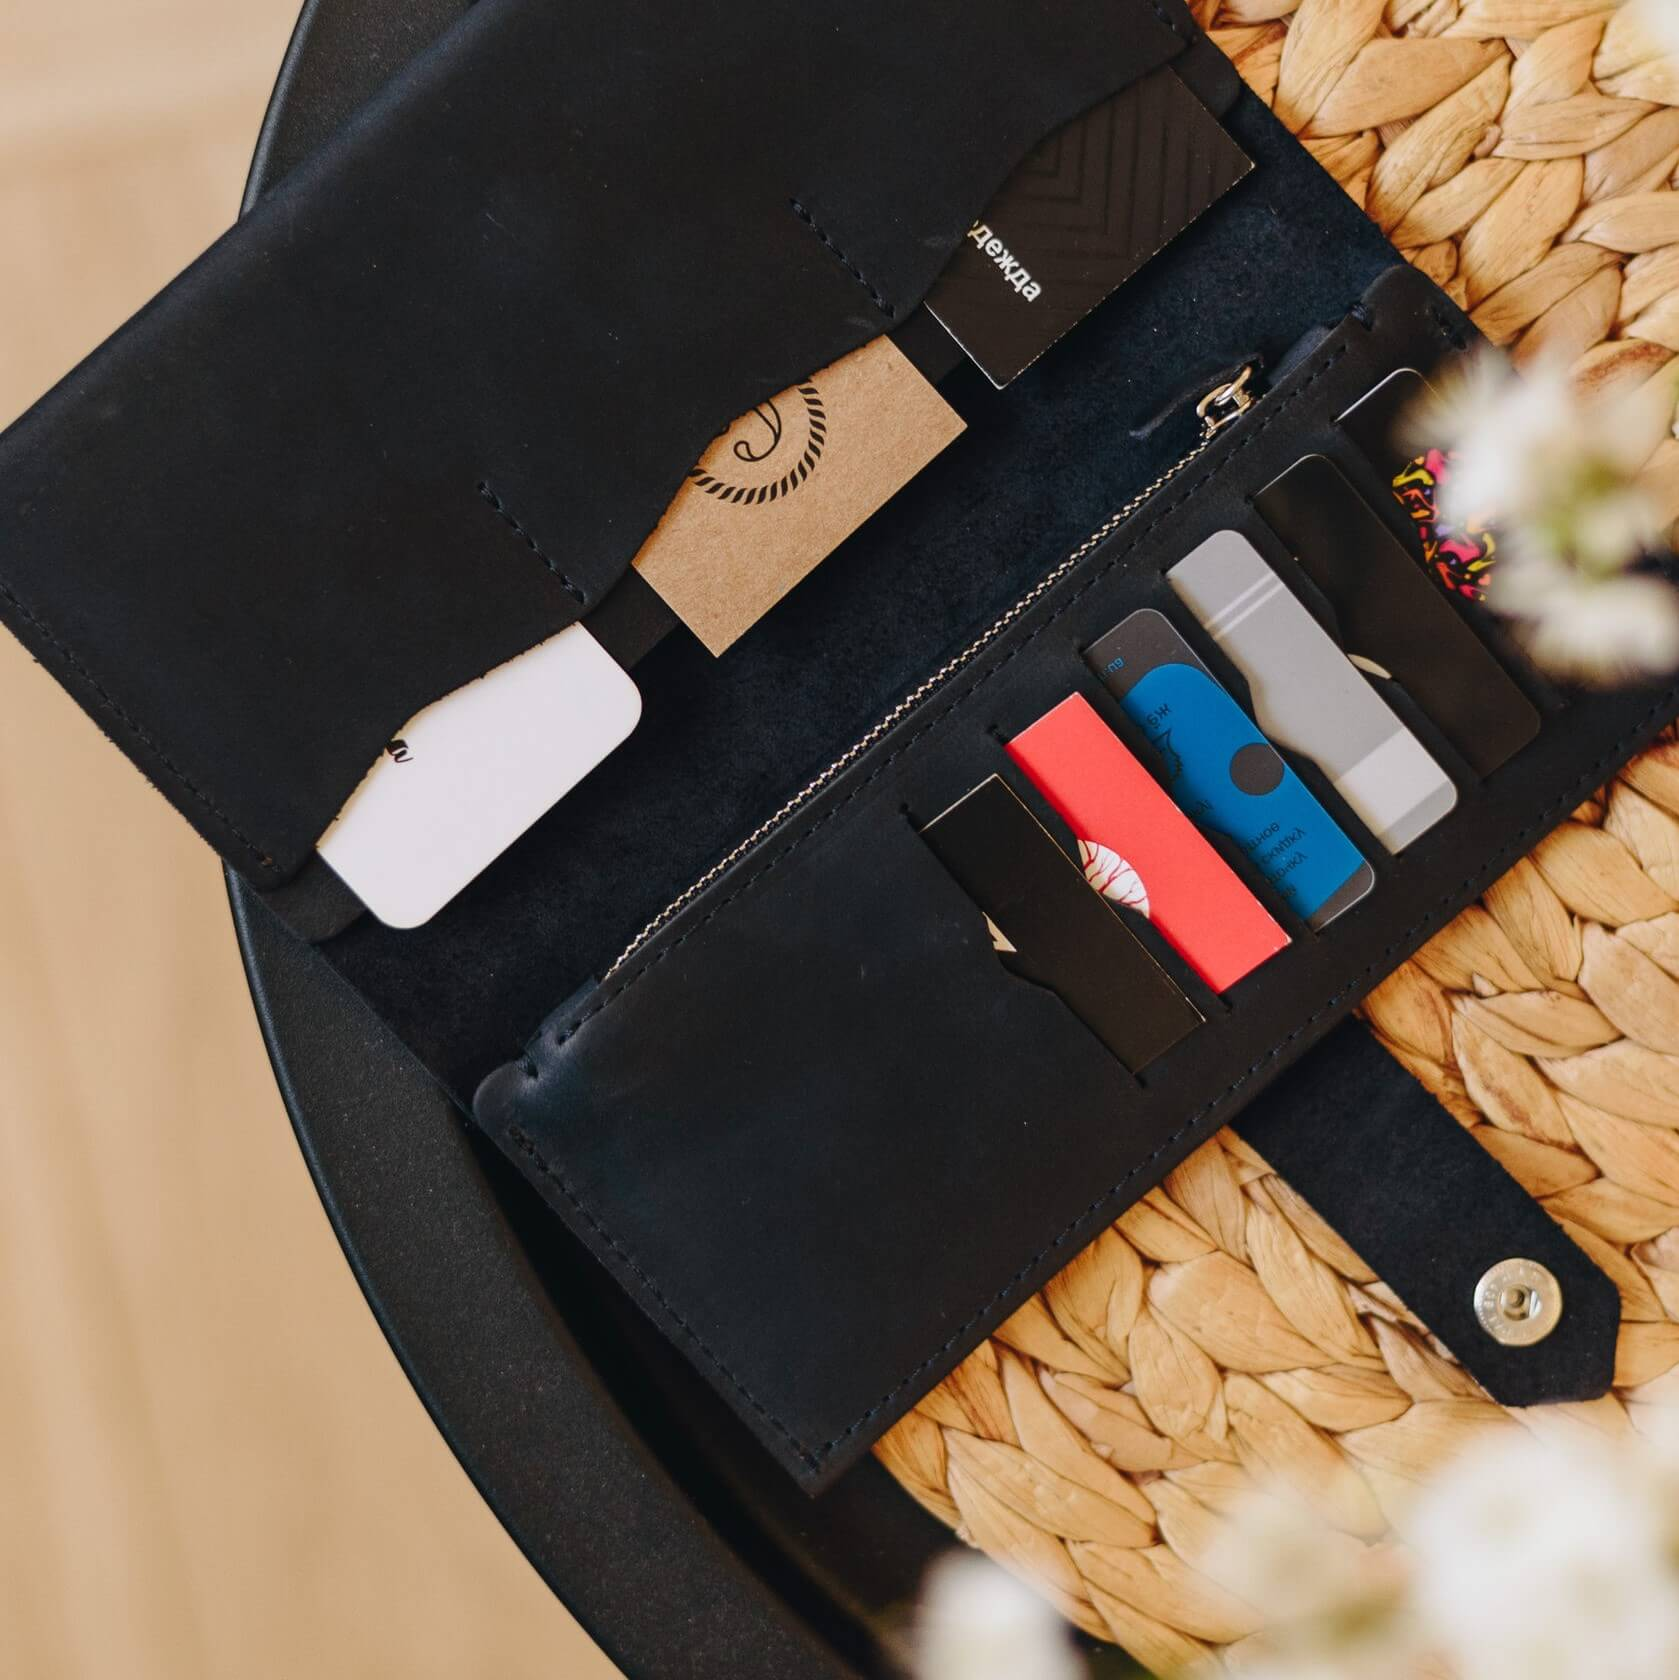 Black Bifold Wallet - 12 compartments